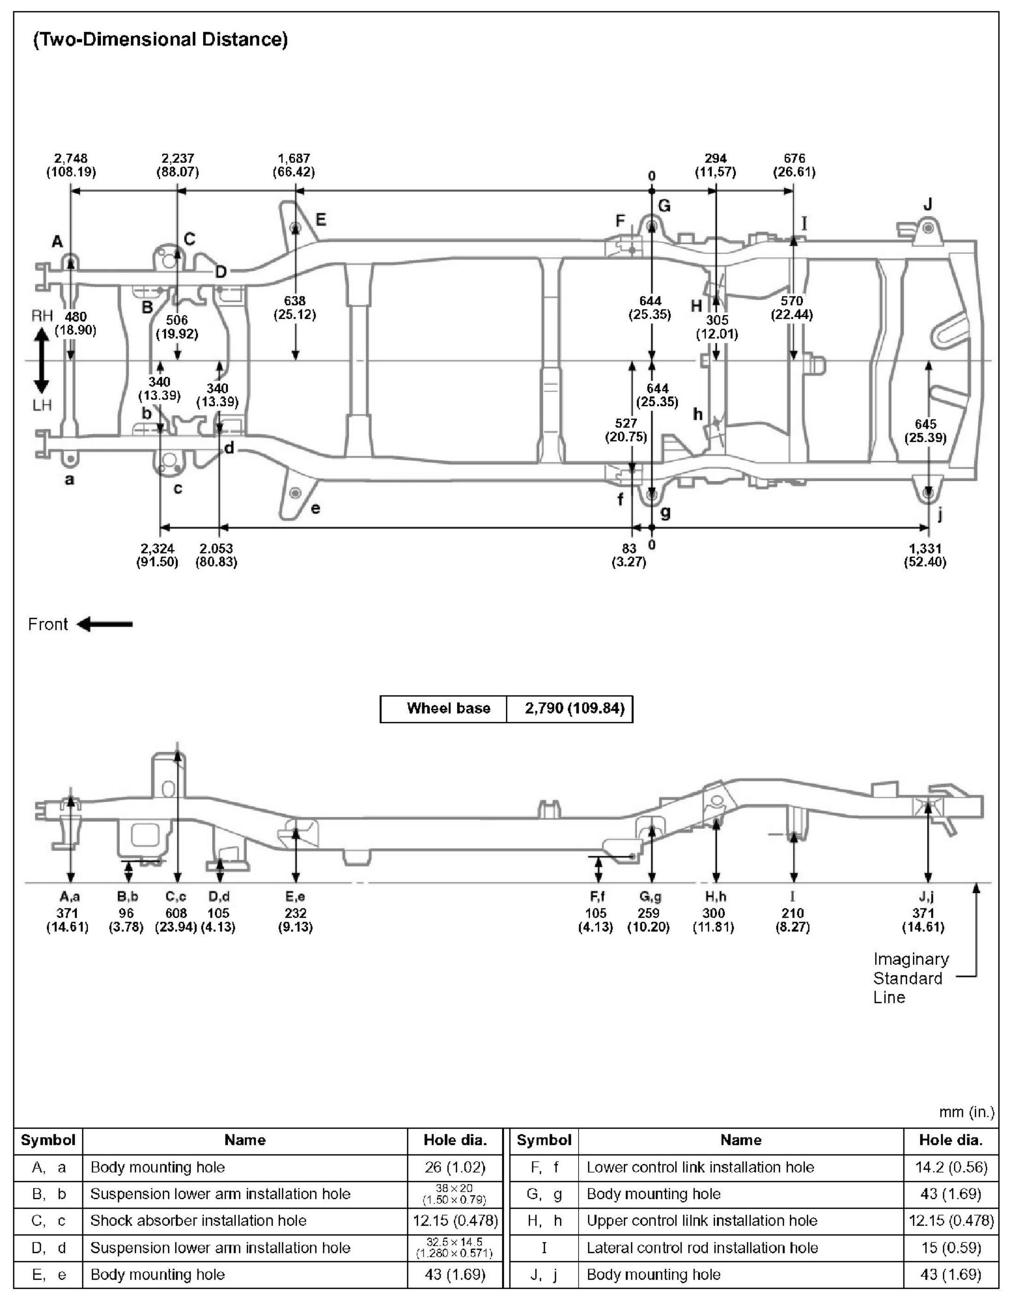 2012 Toyota 4runner Chassis Diagram Reinvent Your Wiring 99 2000 F150 Frame Search For Diagrams Truck Dimensions 1999